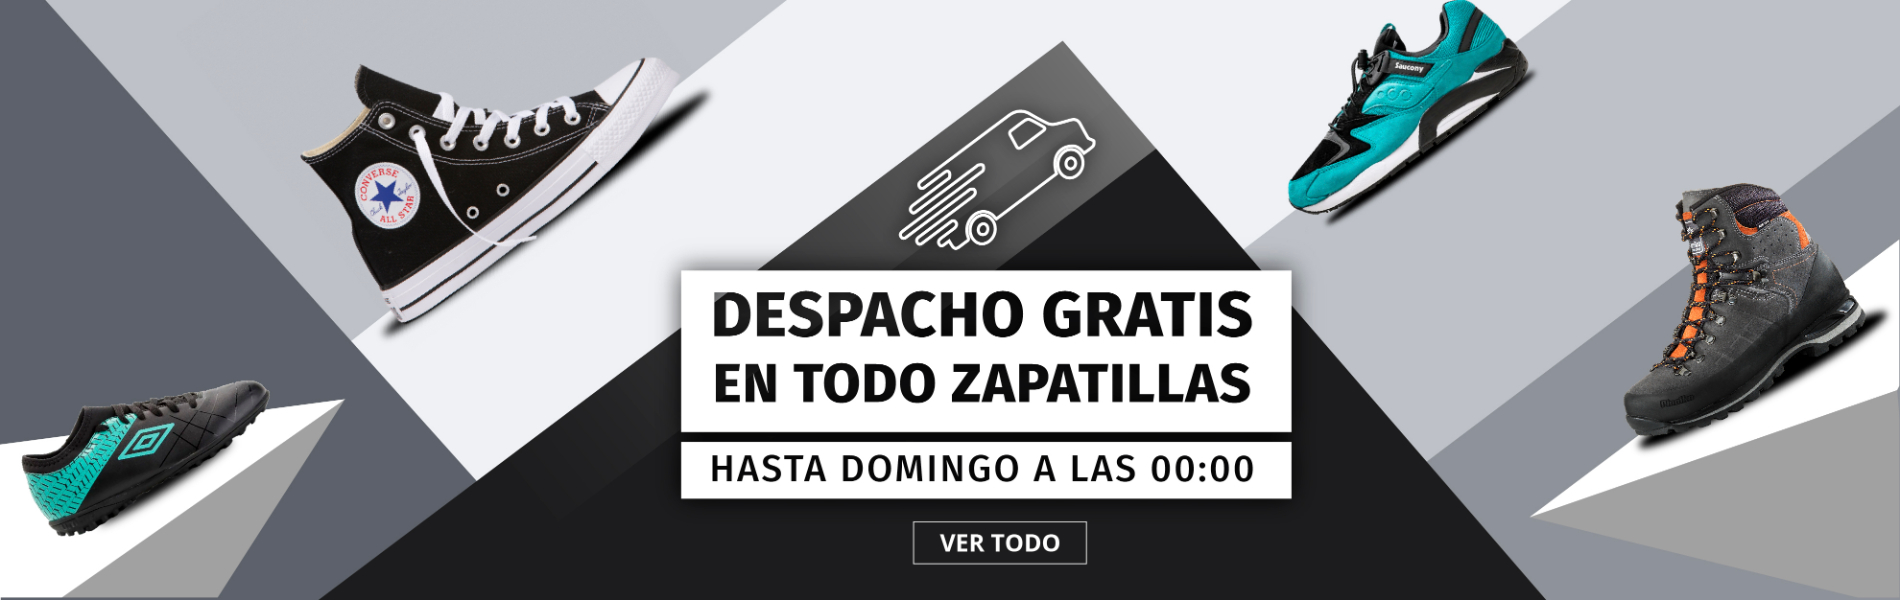 despacho gratis desktop